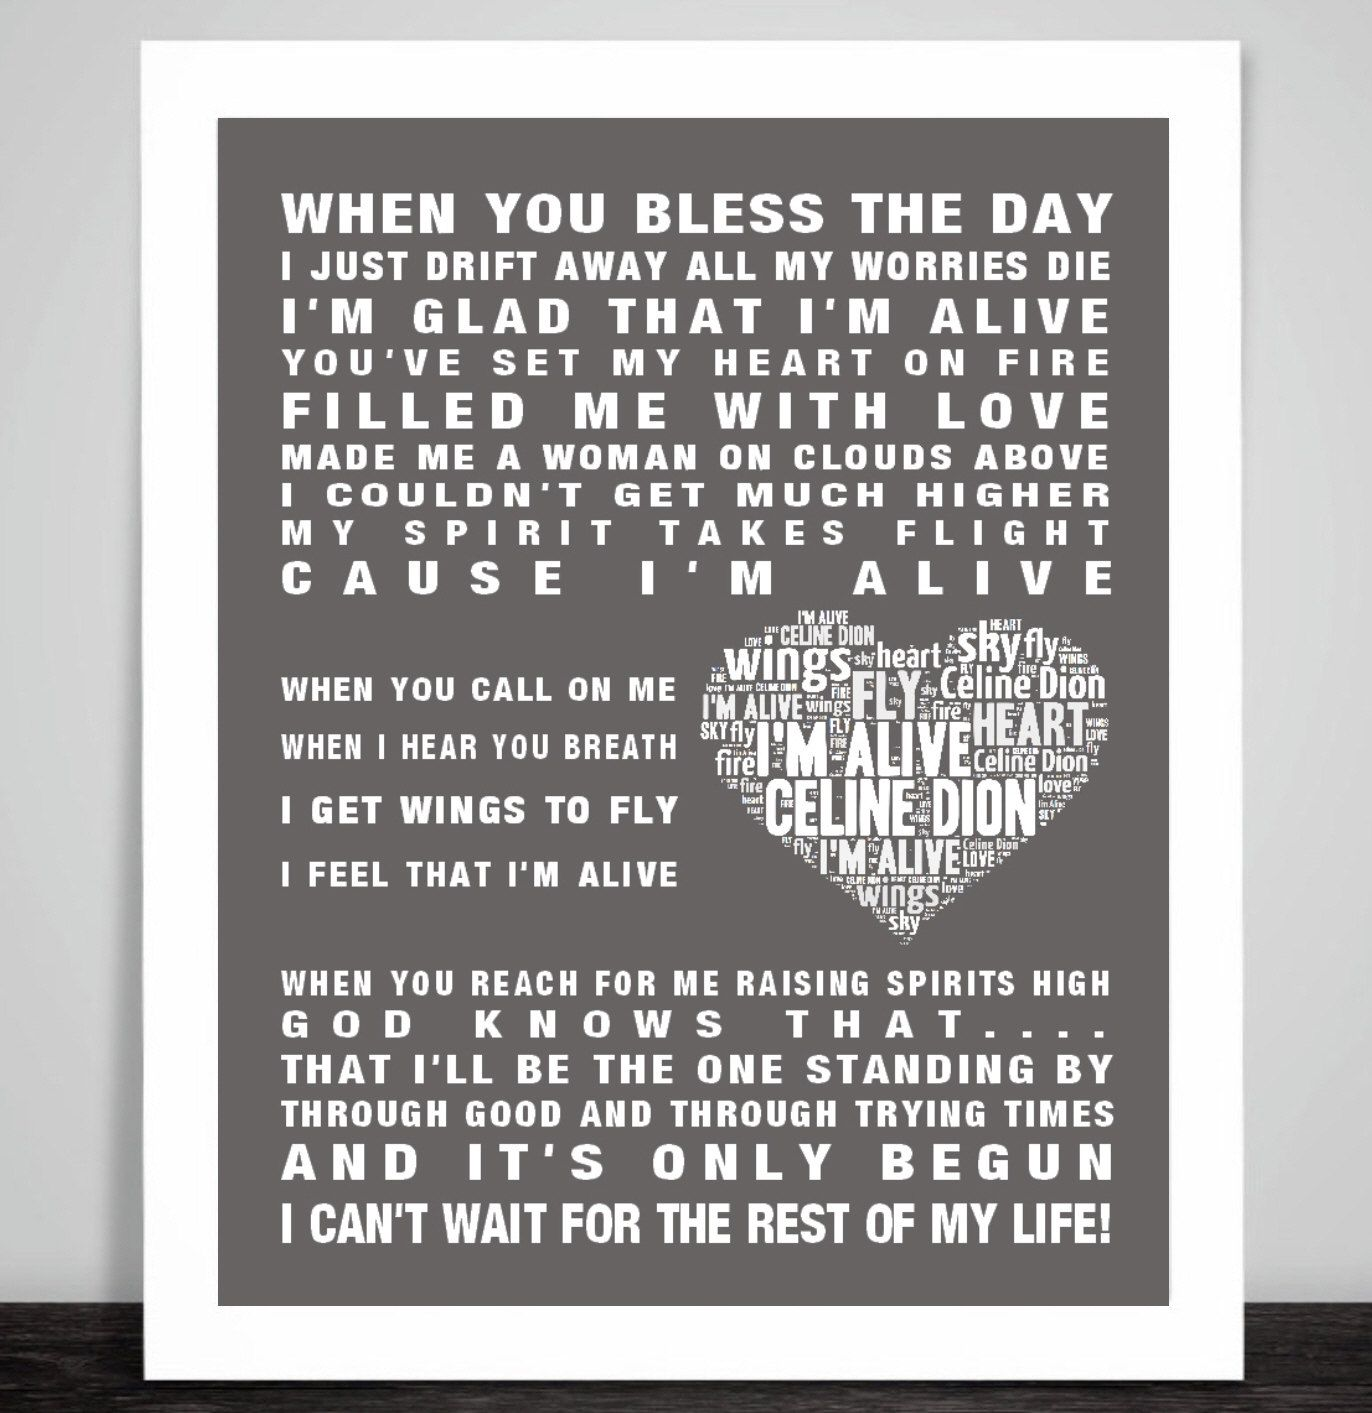 Celine Dion Music Song Lyrics Quot I 39 M Alive Quot Word Art Print Poster Wall Art Print Gift Framed Or Prin Celine Dion Love Songs Lyrics Art Print Gifts